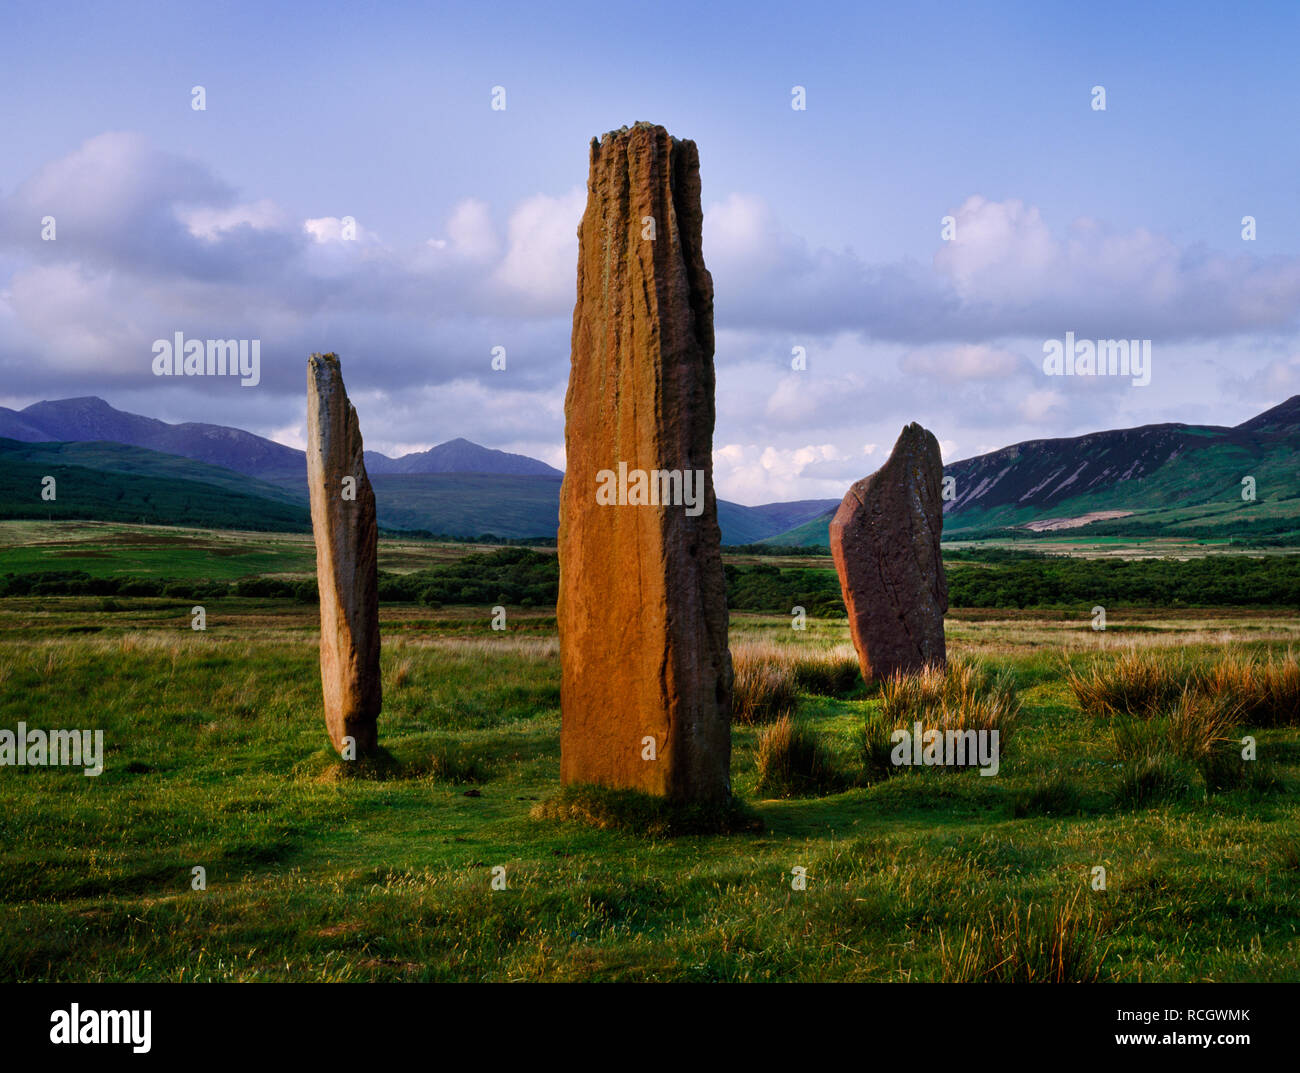 Machrie Moor stone circles, Arran, Scotland, UK: three sandstone slabs of Circle II looking NE to the peak of Goat Fell: part of a Bronze Age complex. Stock Photo